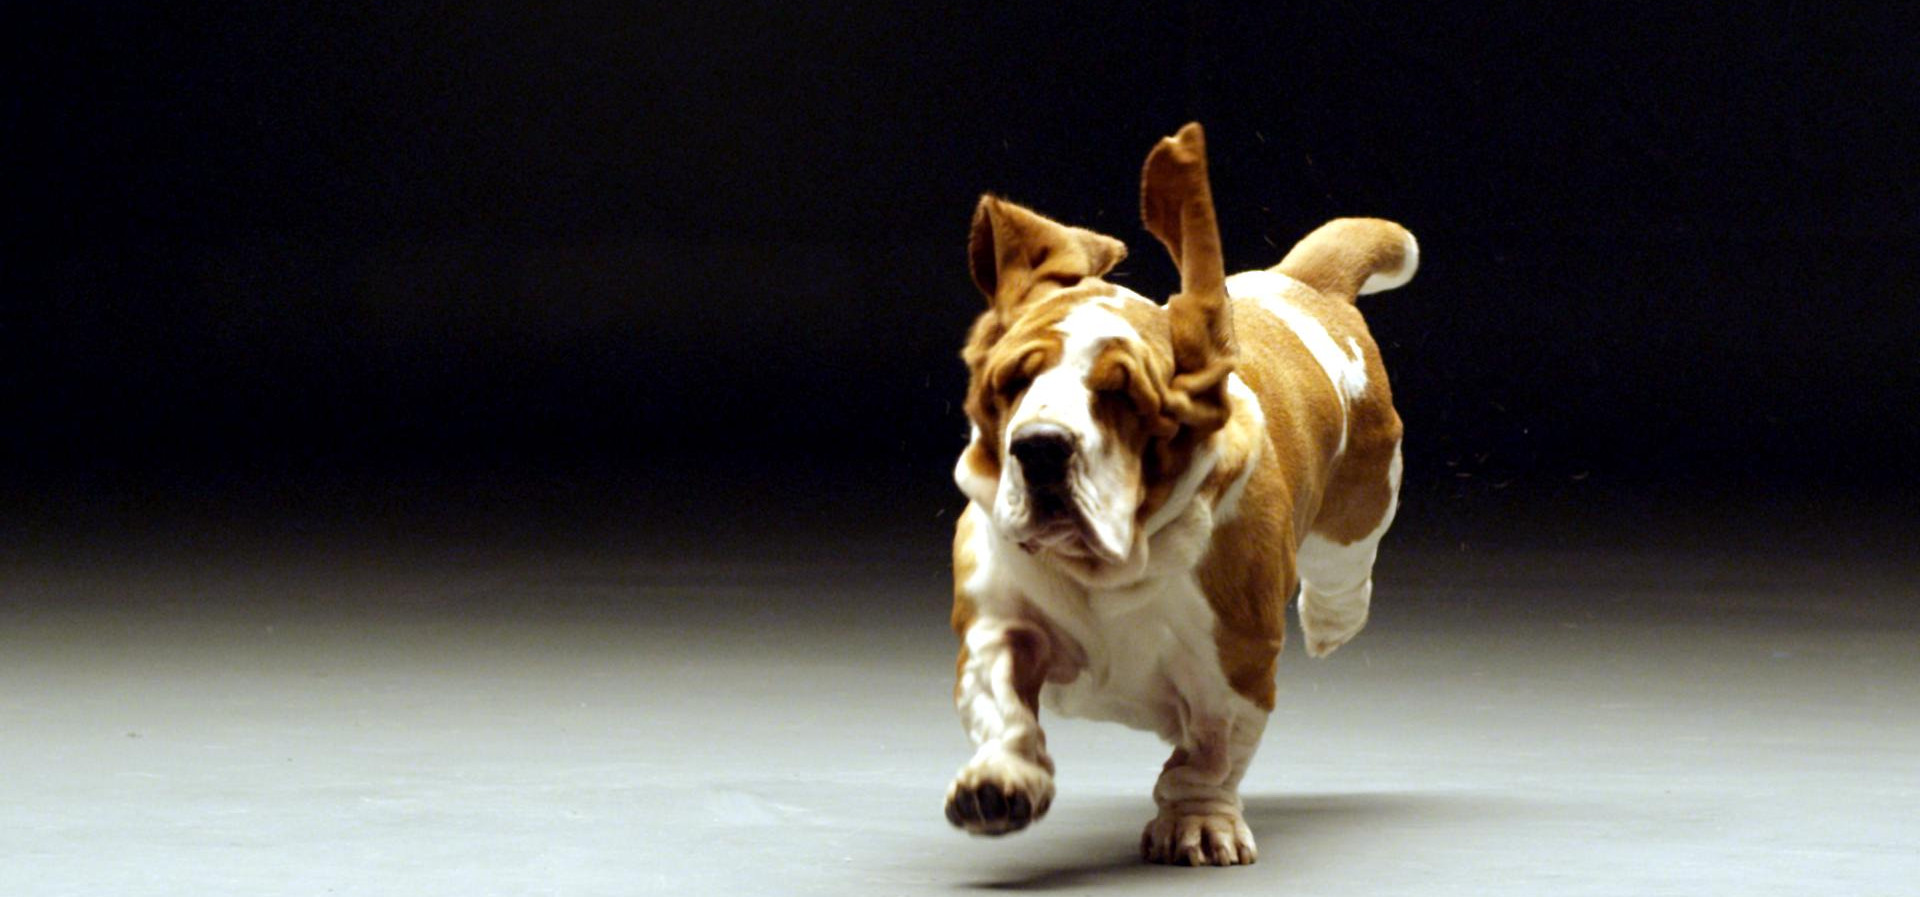 Leo-the-Bassett-Hound-running-closer-sho